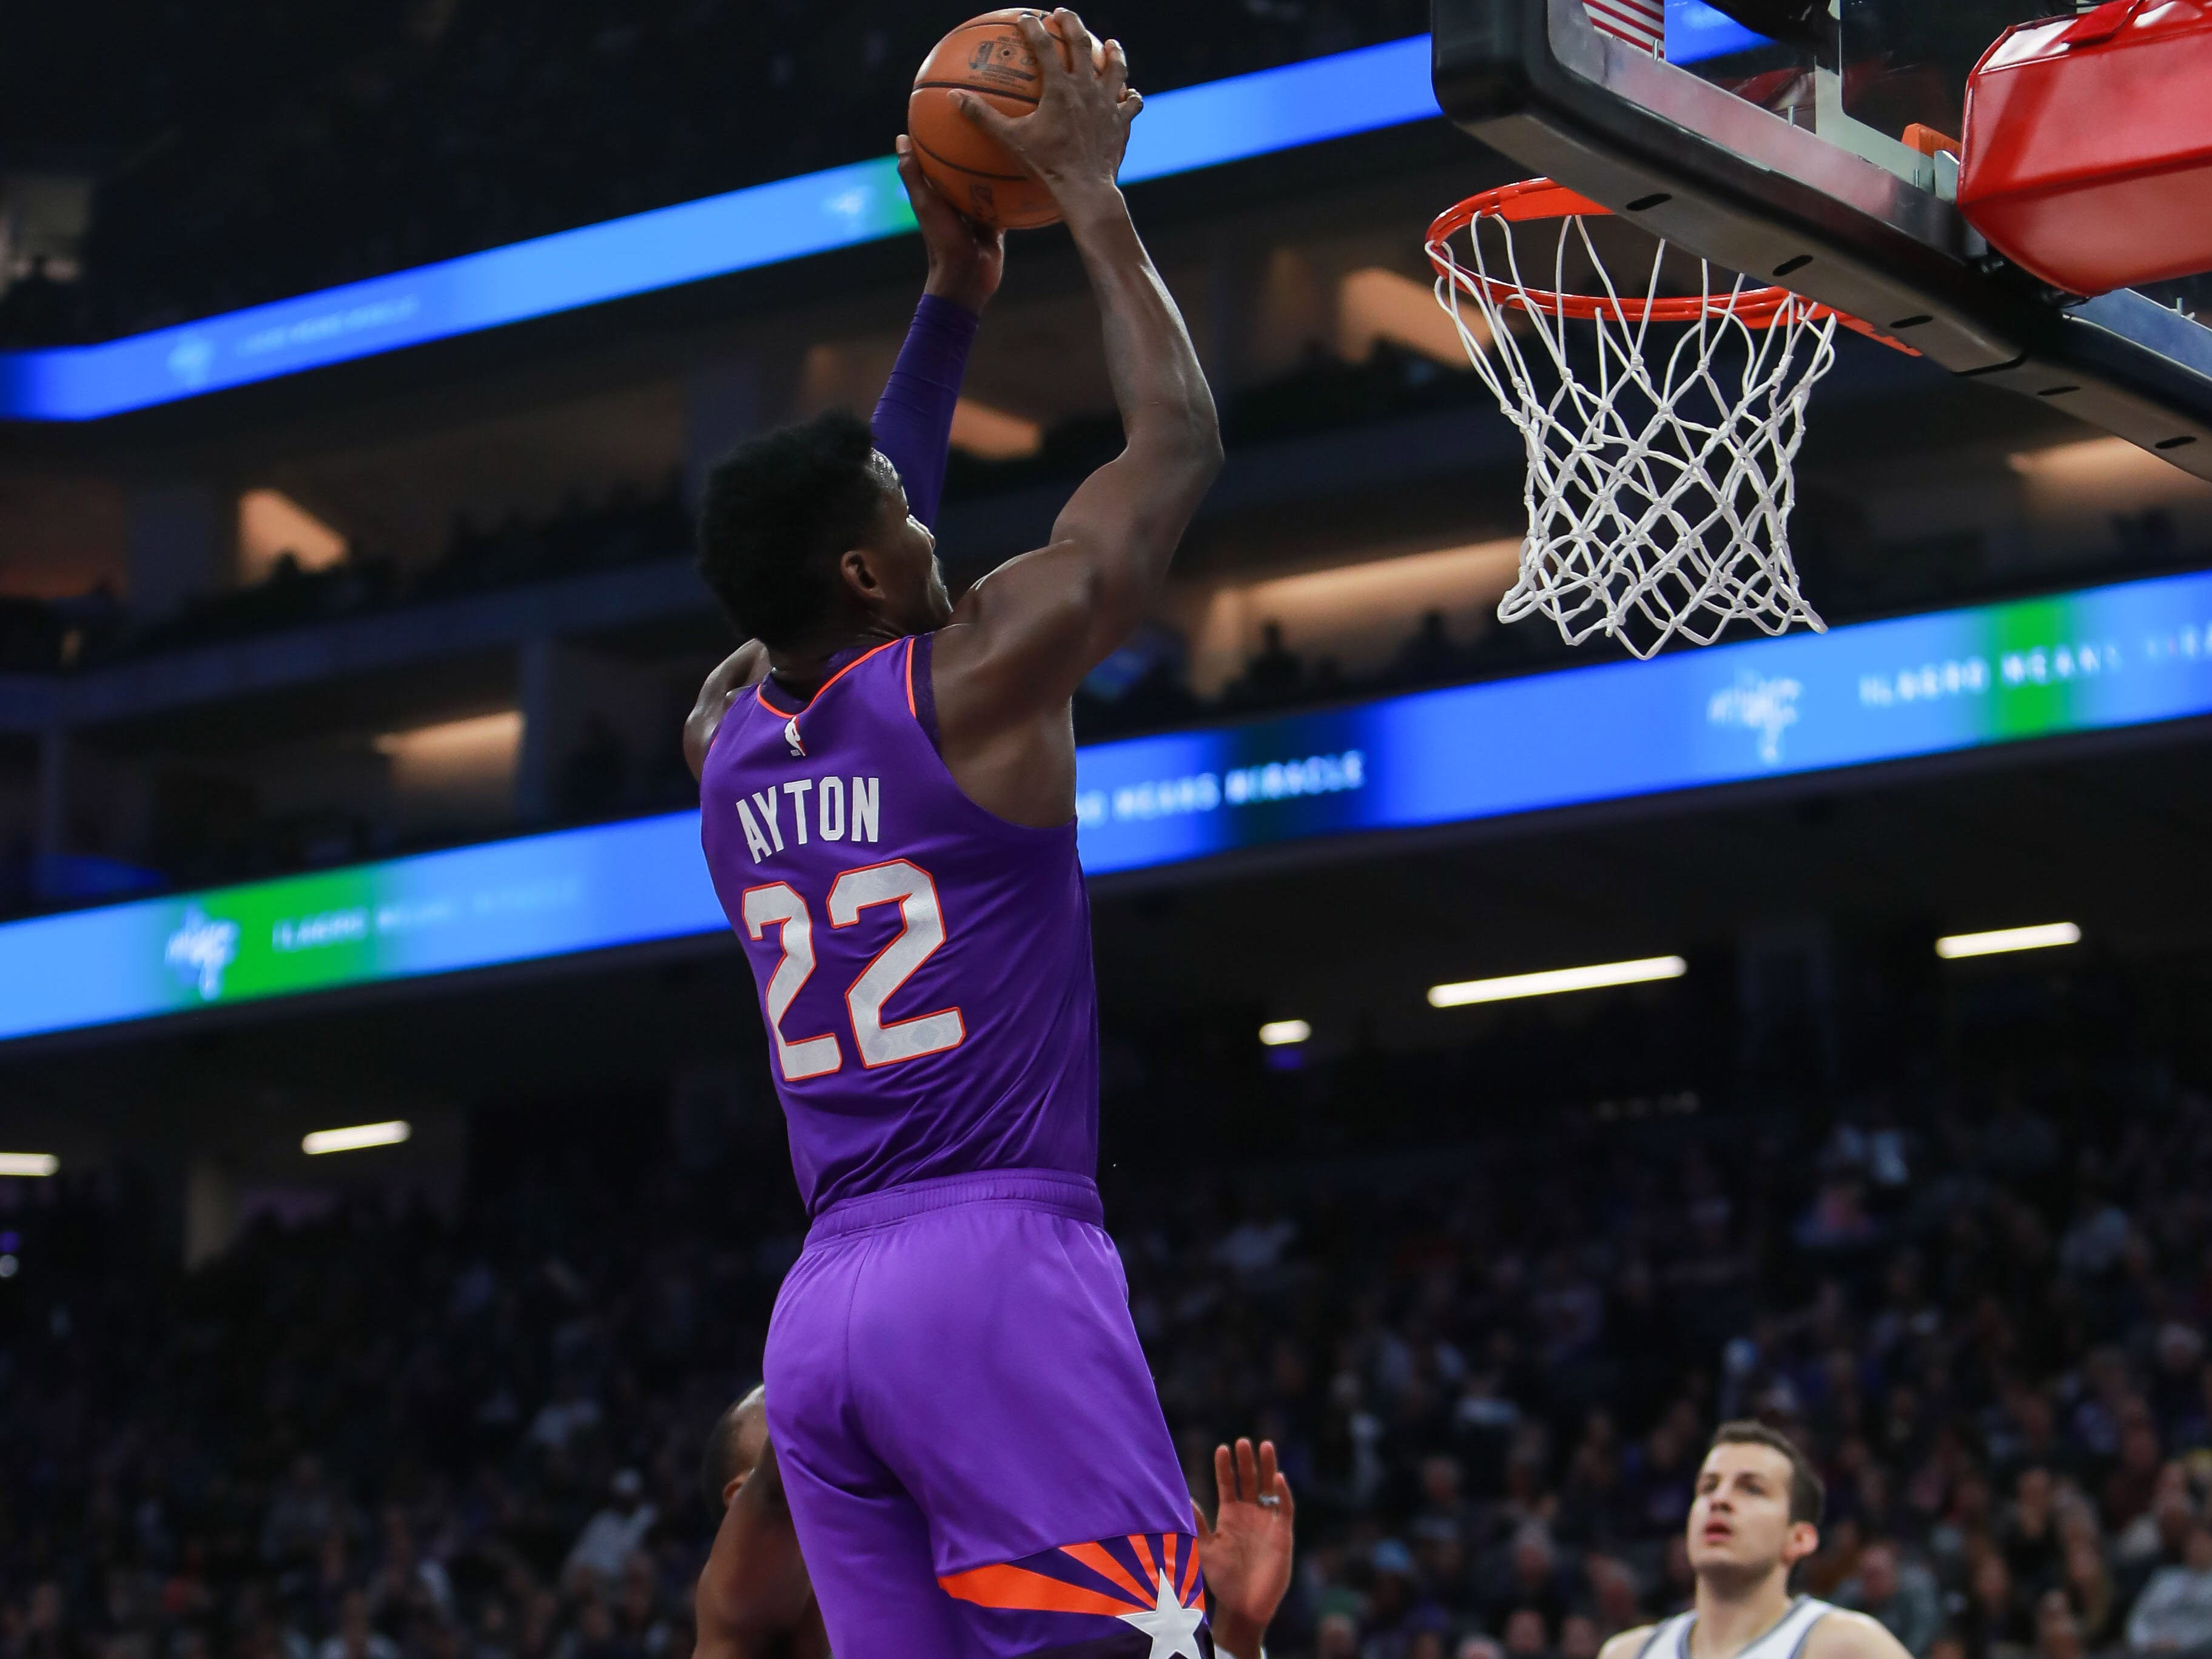 Mar 23, 2019; Sacramento, CA, USA; Phoenix Suns center Deandre Ayton (22) dunks the ball against the Sacramento Kings during the first quarter at Golden 1 Center.